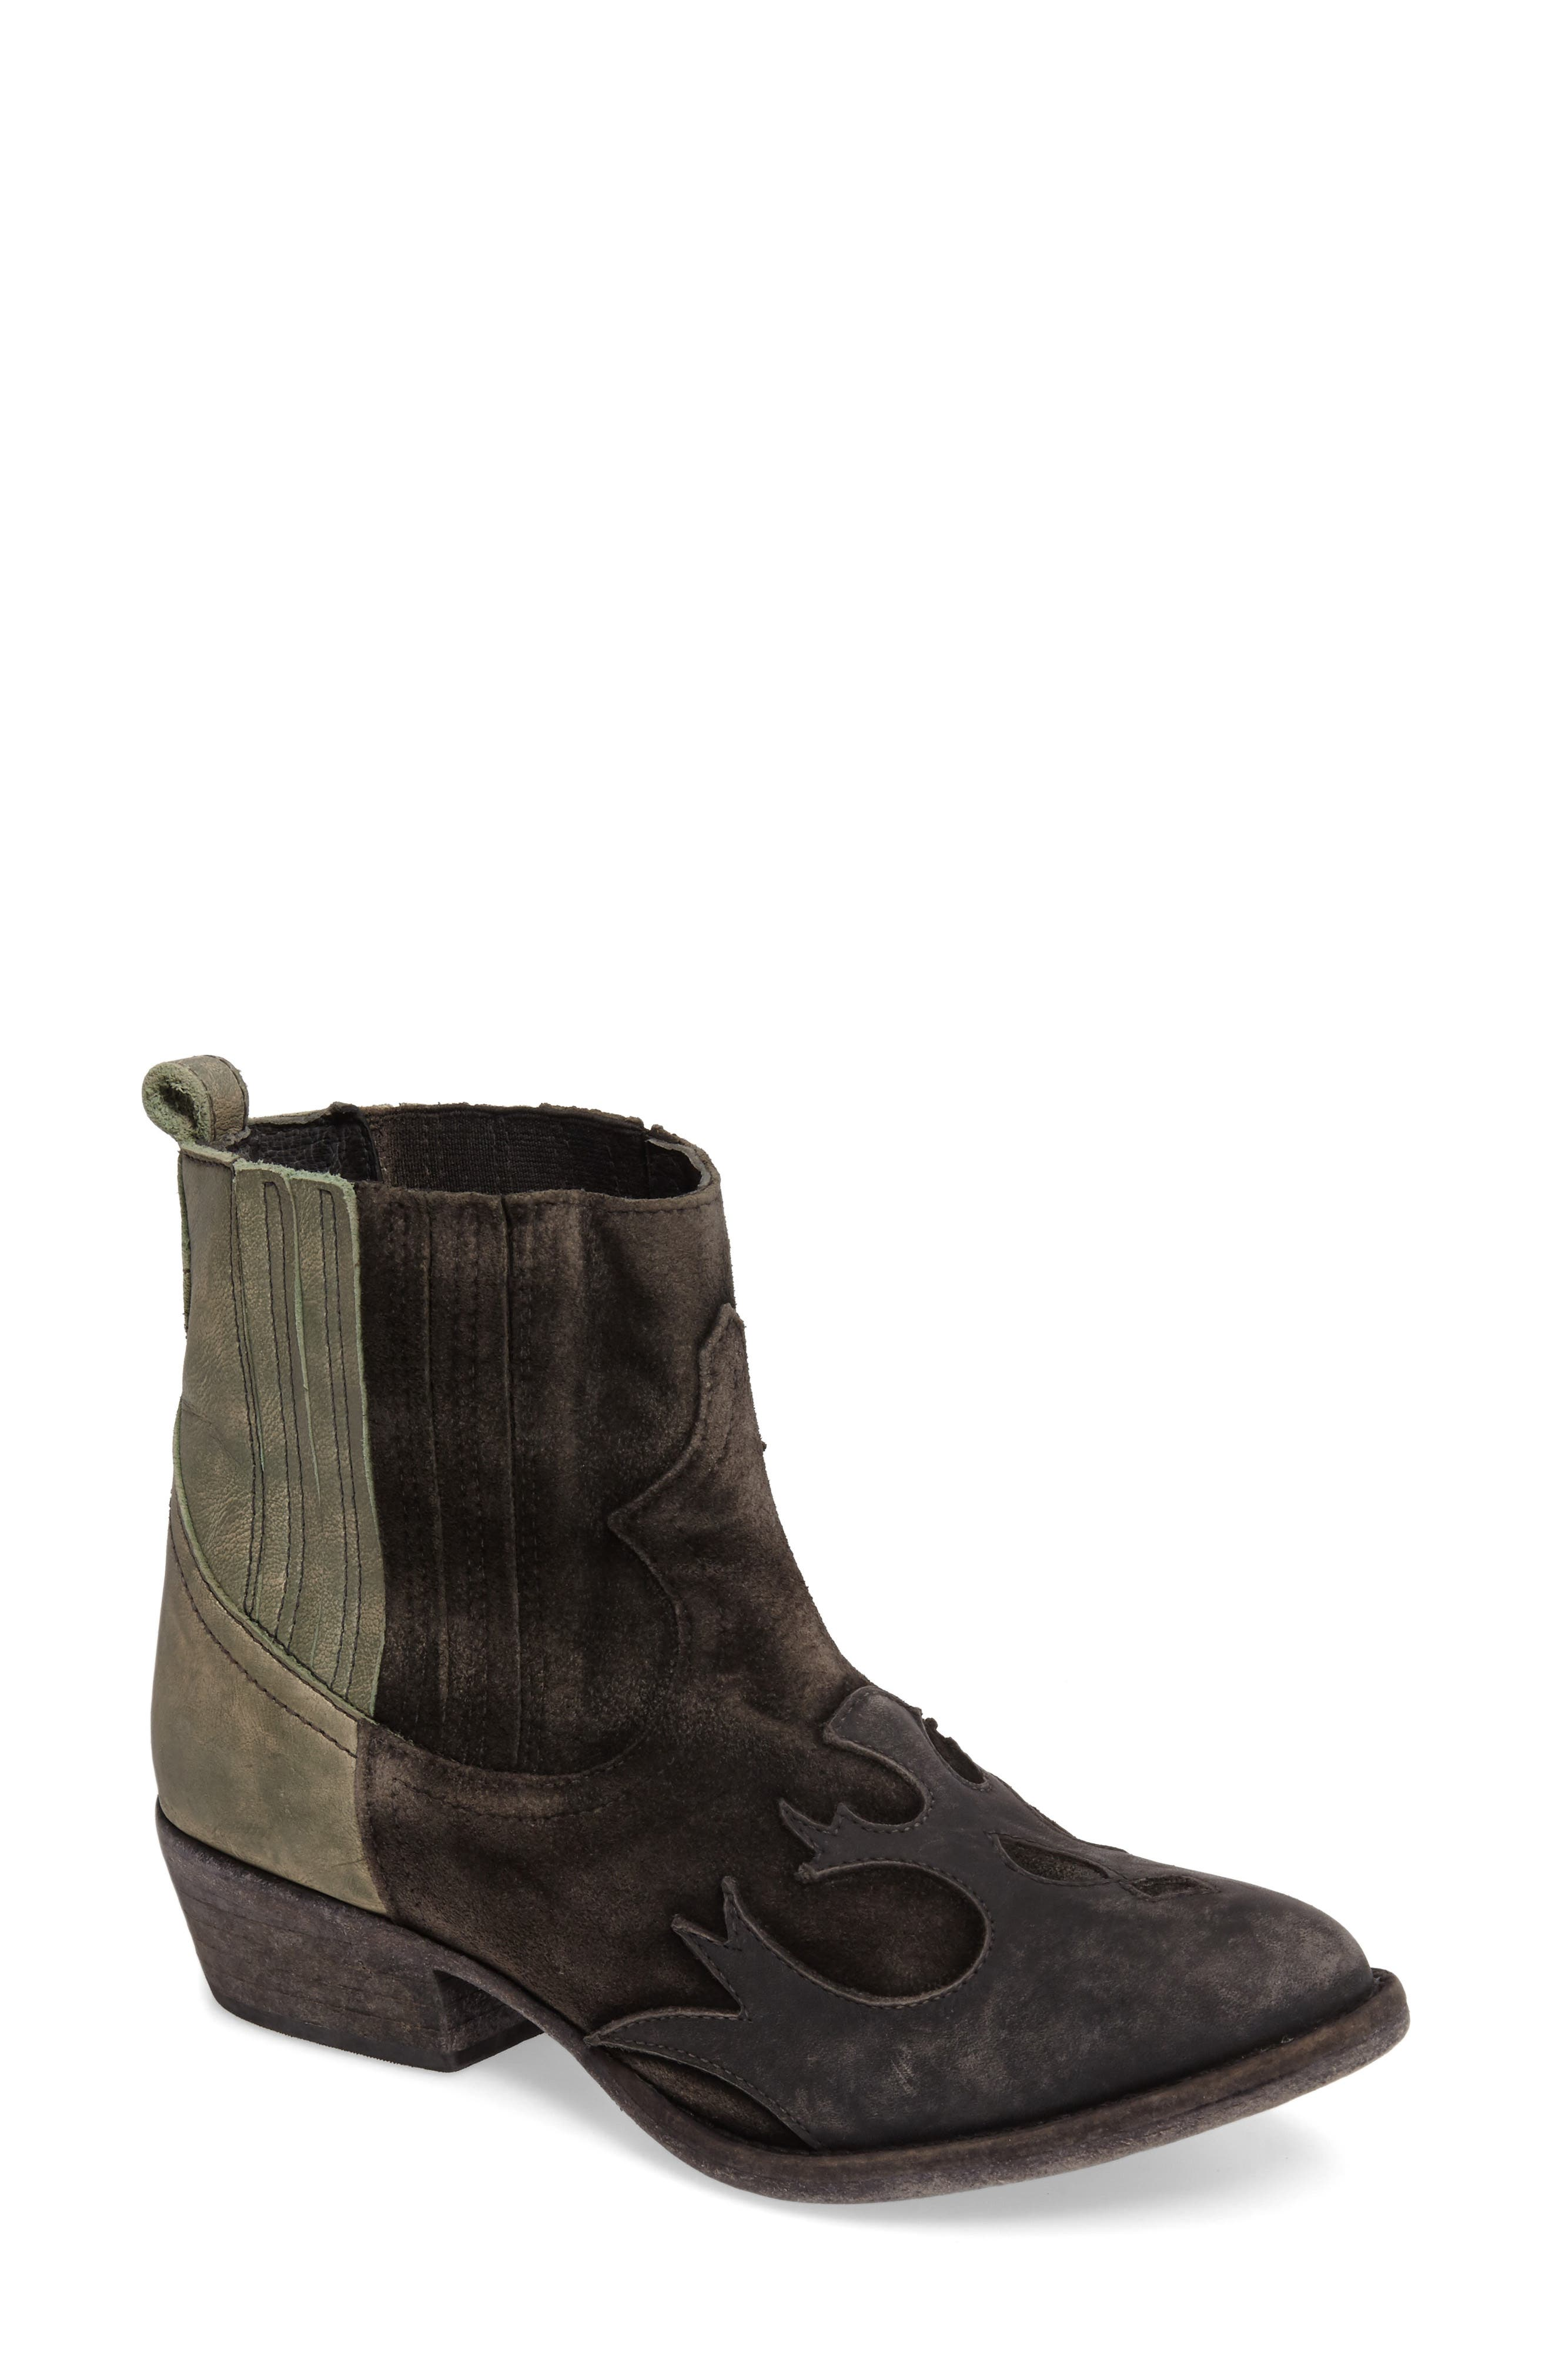 Royston Bootie,                         Main,                         color, Black Leather